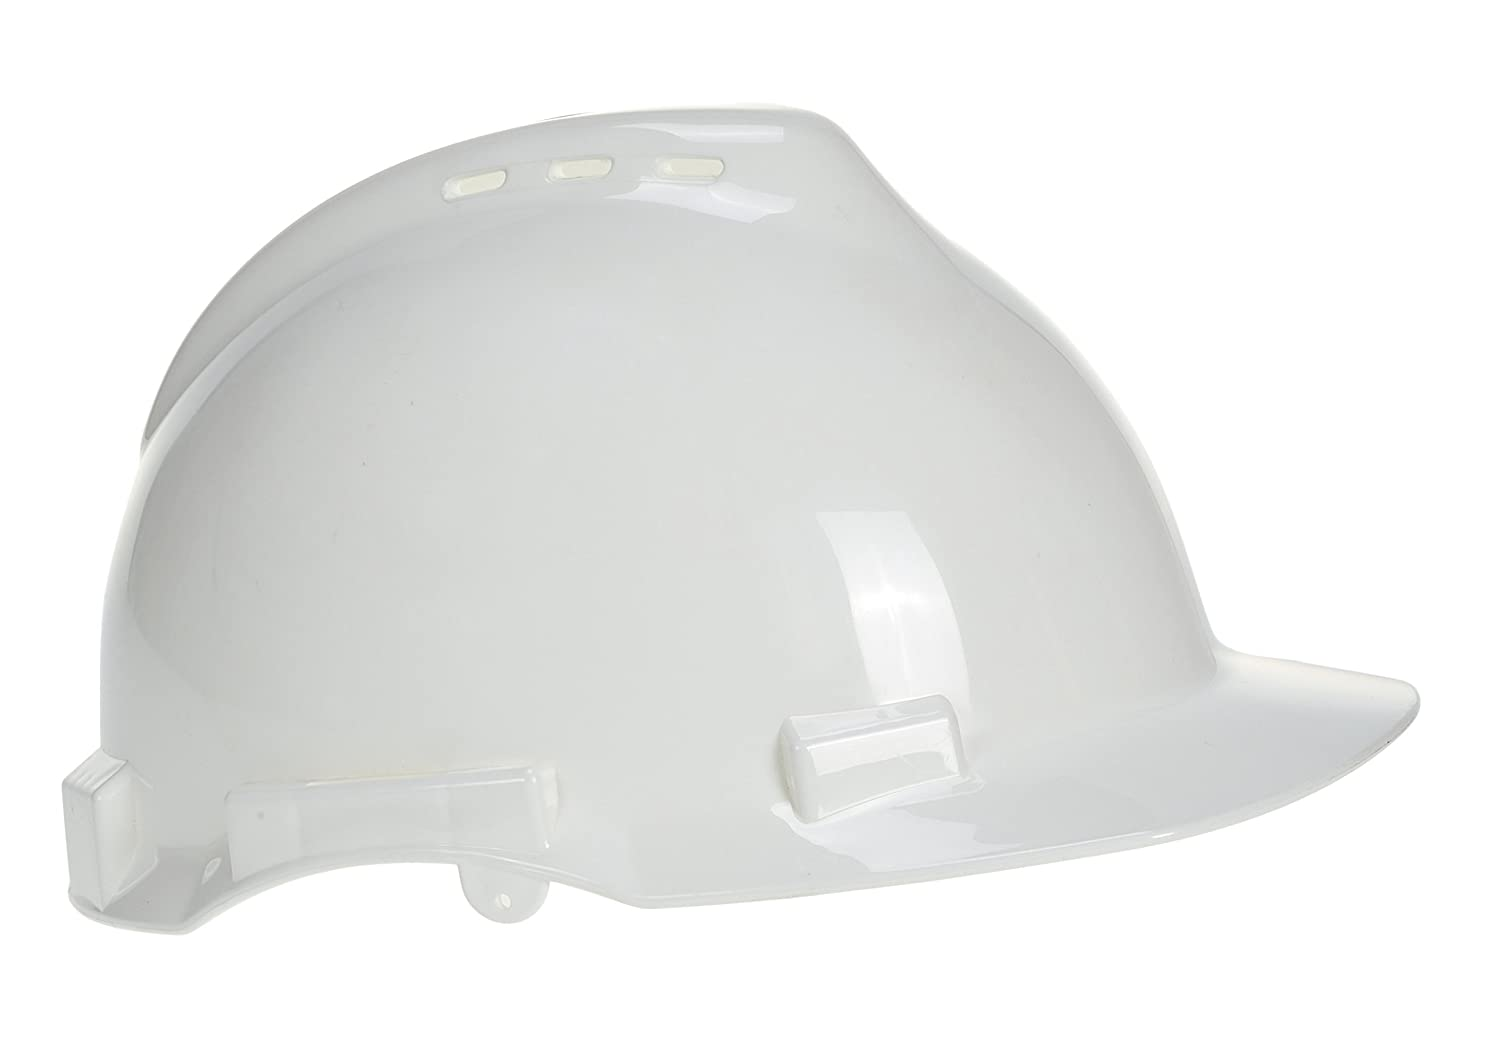 Portwest PS50 - PW Flecha casco de seguridad, color Amarillo: Amazon.es: Industria, empresas y ciencia